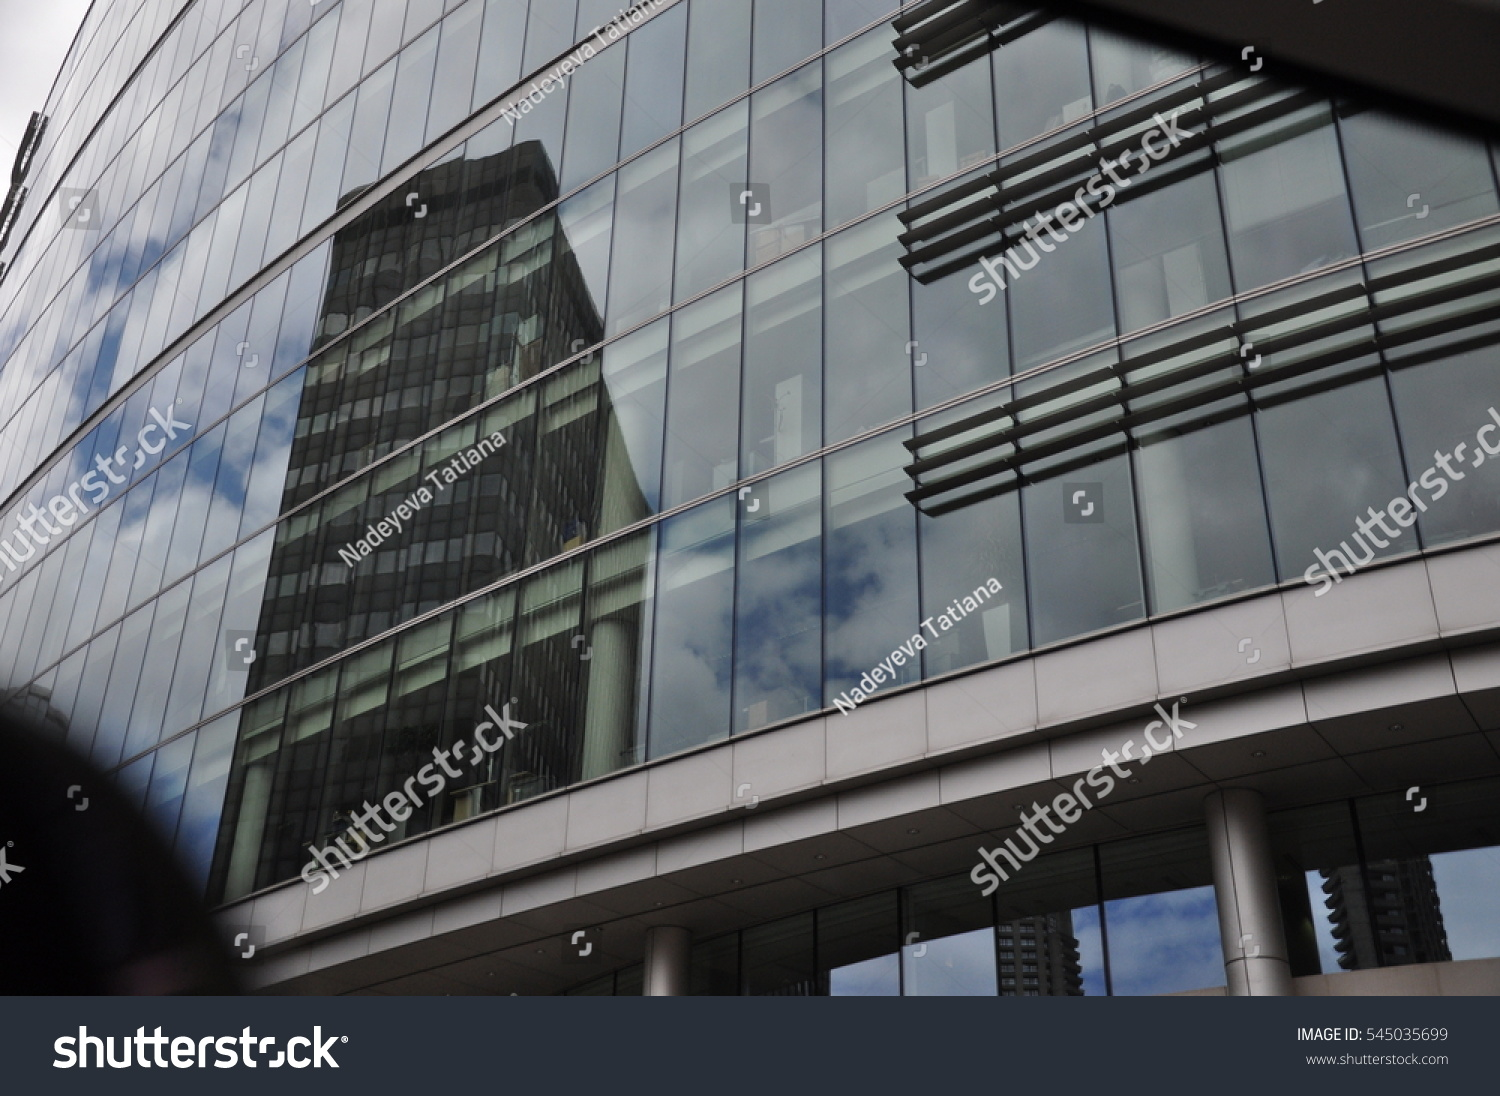 Building Glass Reflection Stock Photo 545035699 - Shutterstock